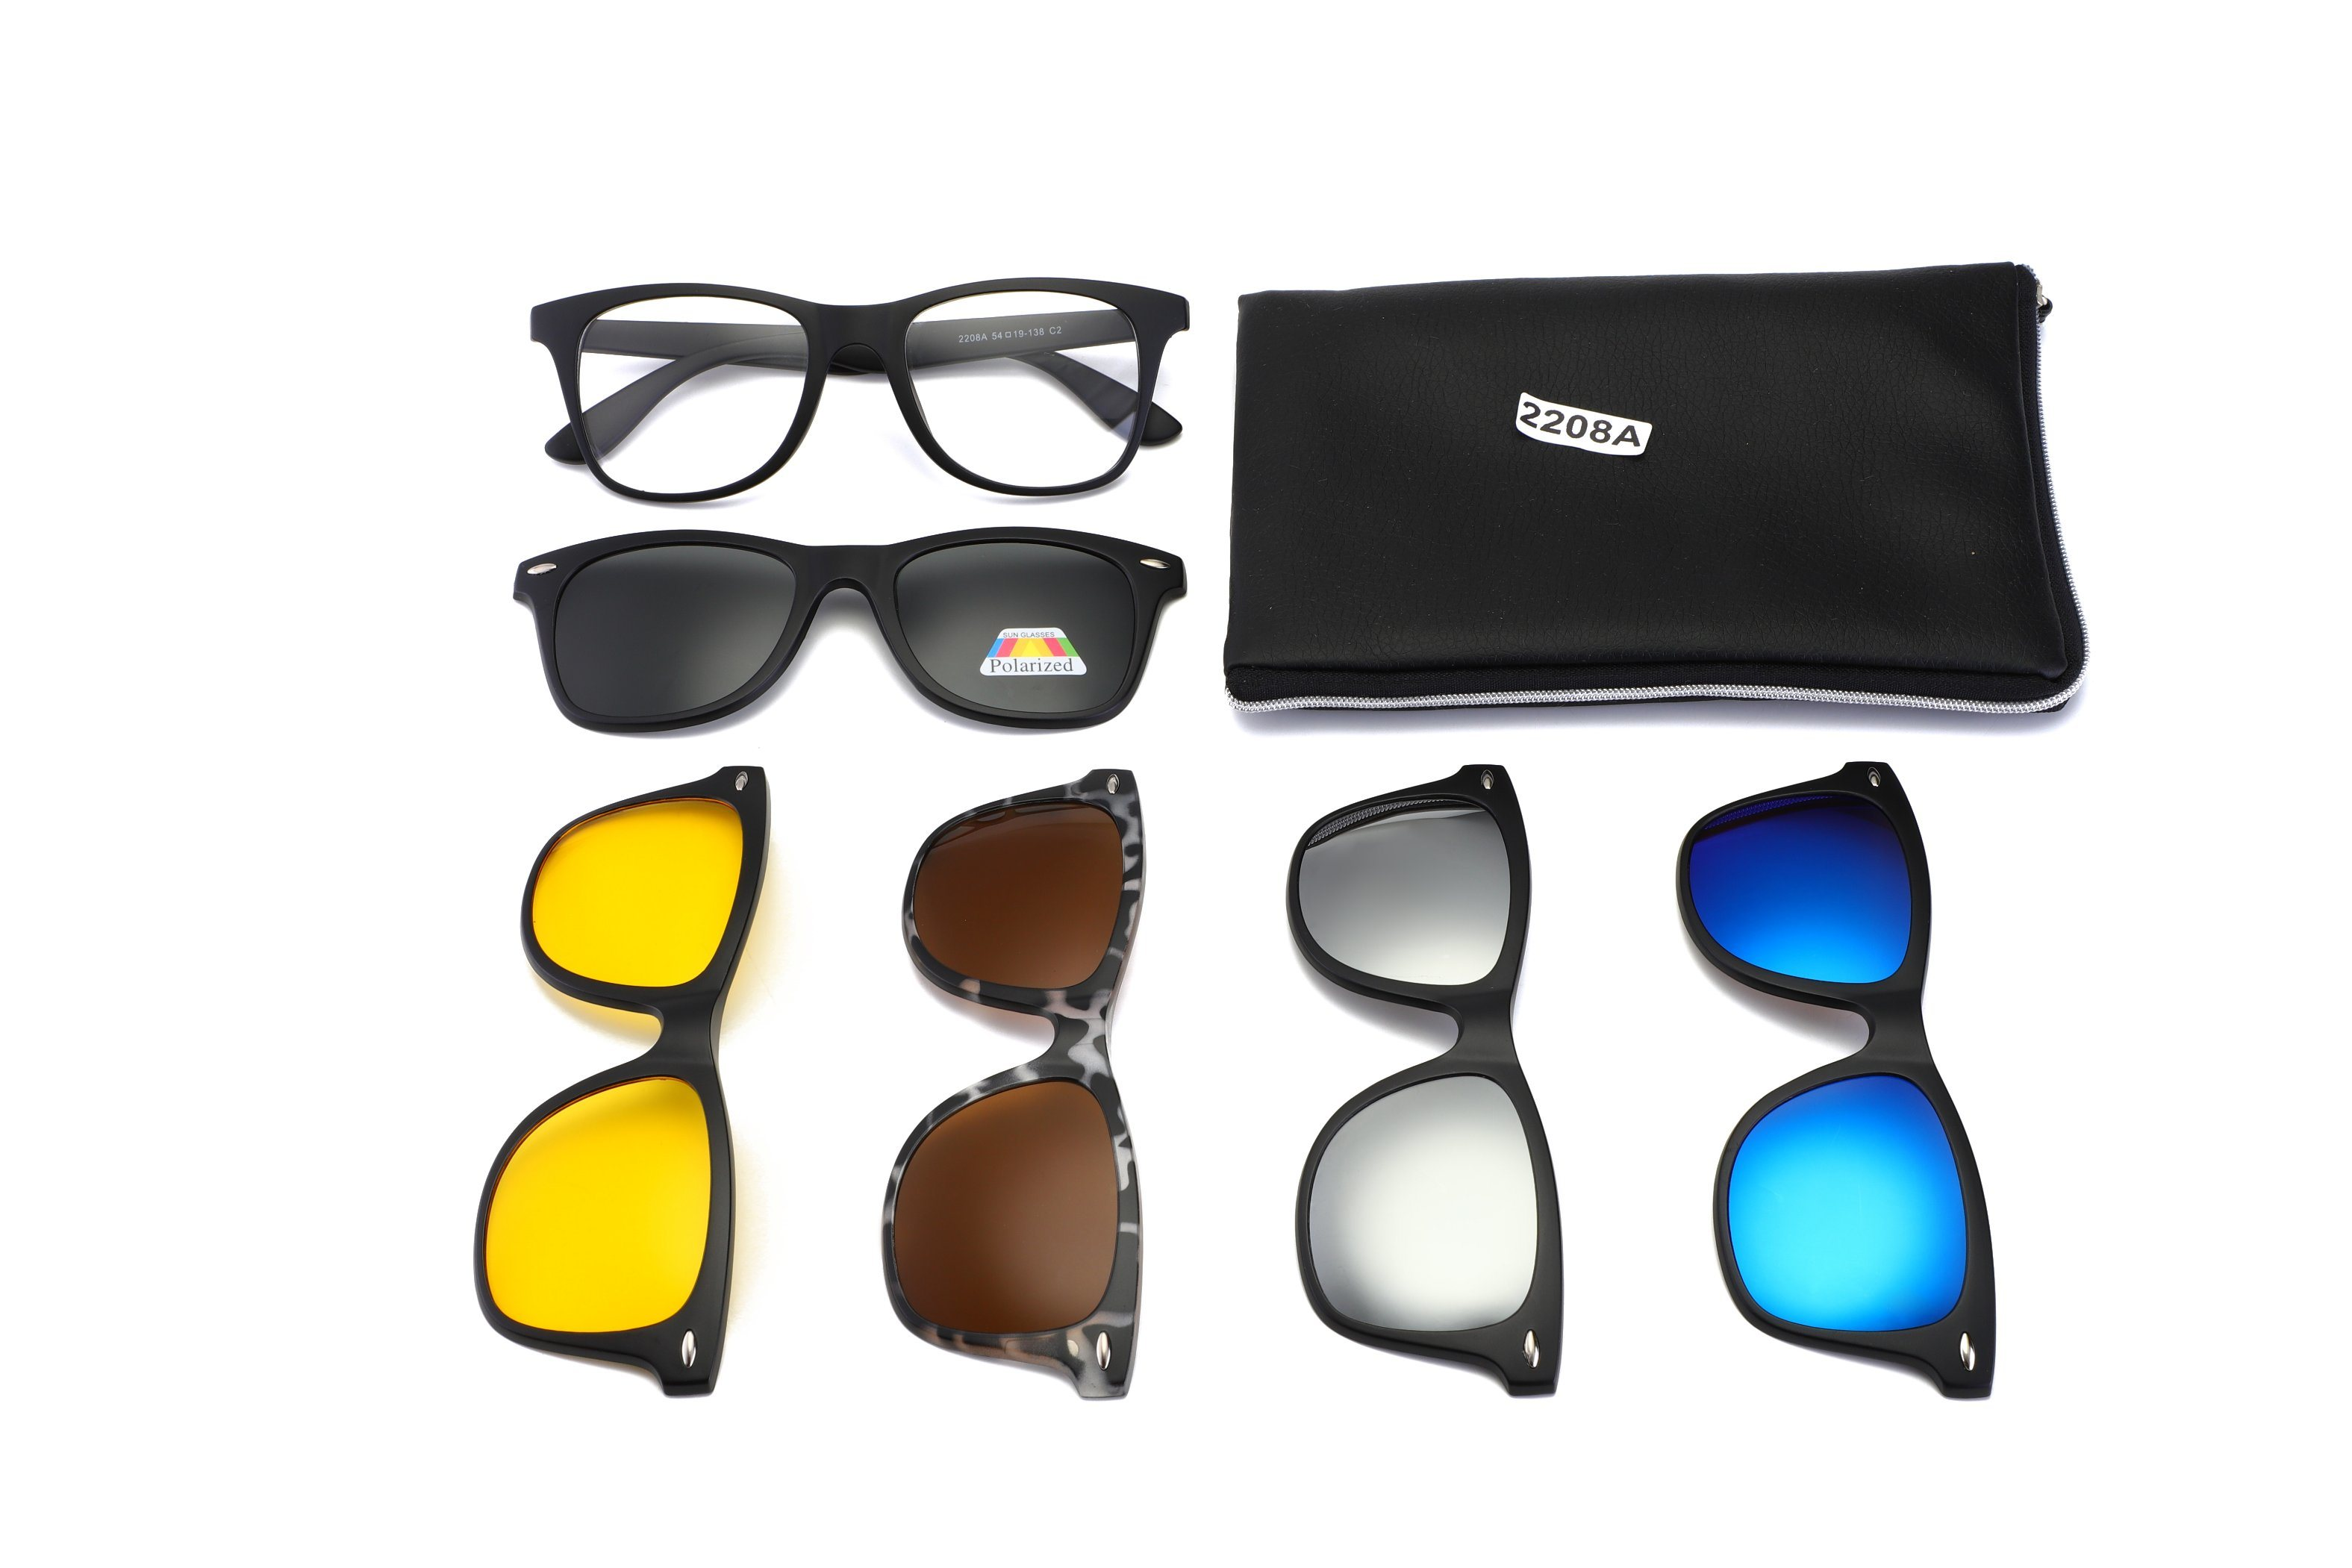 bdc19283edff5 Polarized Night Vision Magnetic 5 in 1 Clip on Sunglasses Set with Metal  Frame